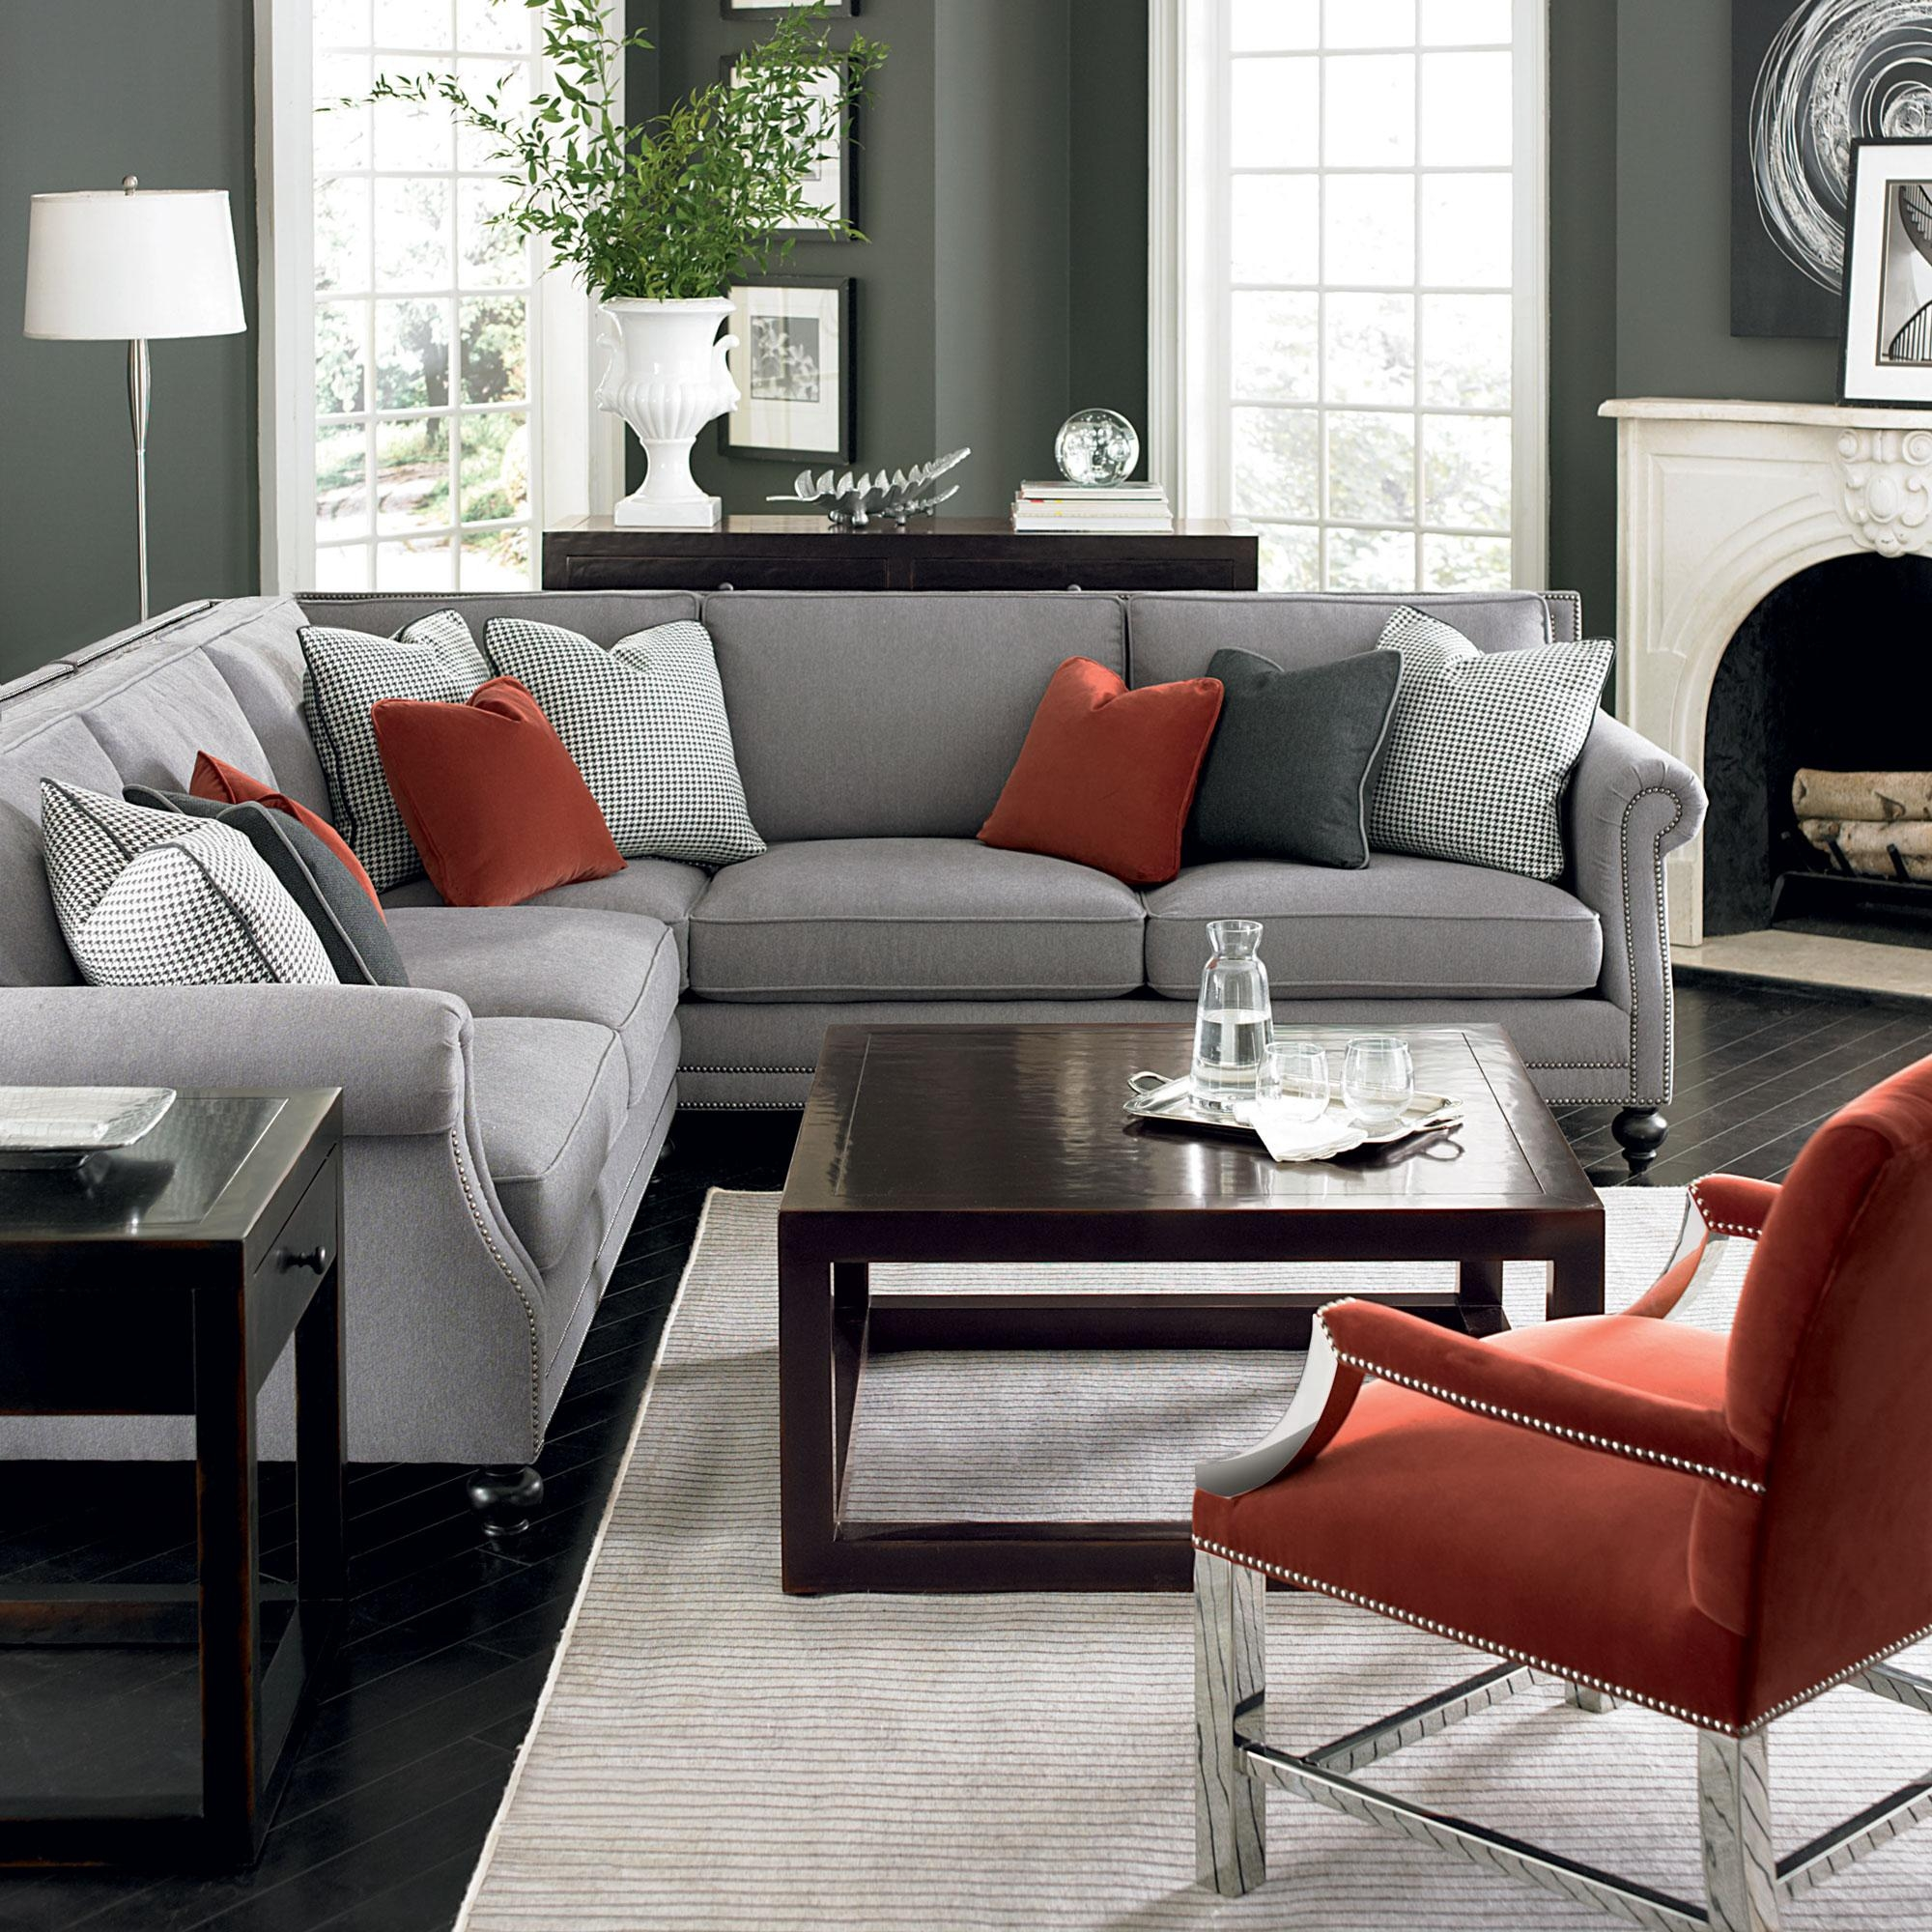 Piedmont Sofa With Ideas Gallery 30070 | Kengire With Piedmont Sofas (Image 17 of 20)